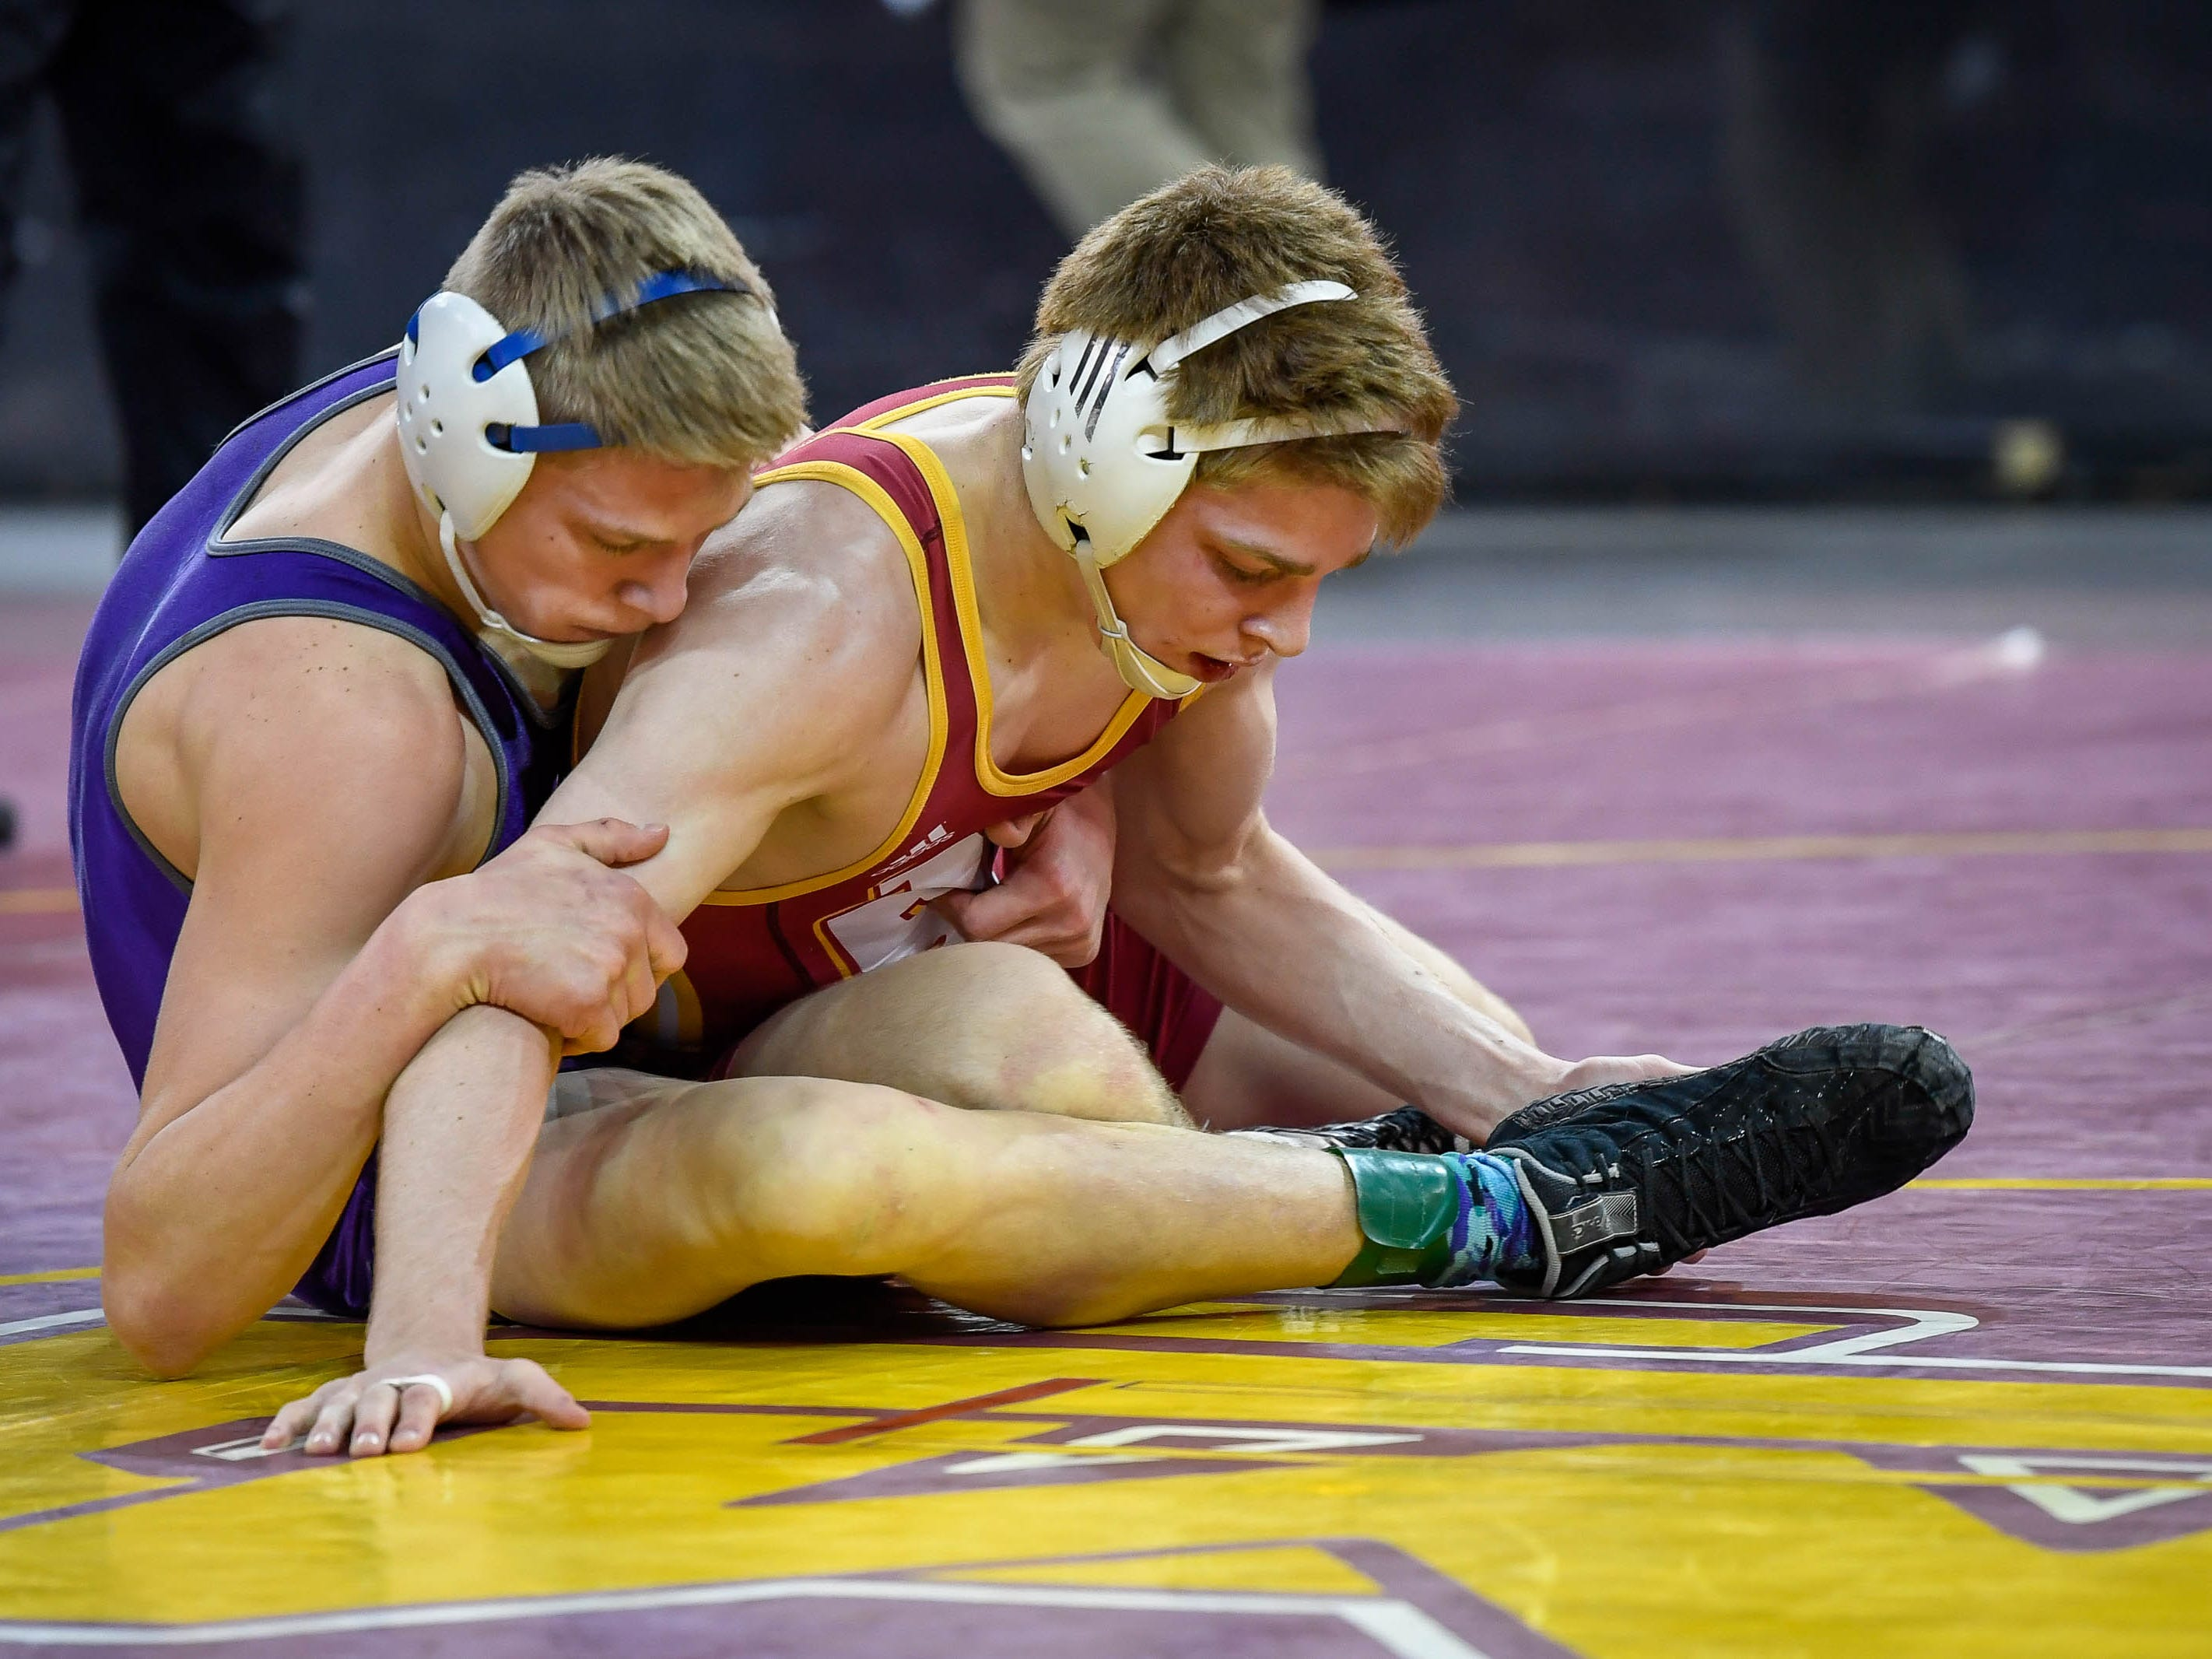 Matthew Lee, Evansville Mater Dei, wrestles Brach Carrington, Greencastle, in the 145 weight class at the Indiana High School Athletic Association Semi-State Wrestling Tournament held at the Ford Center Saturday, February 9, 2019.